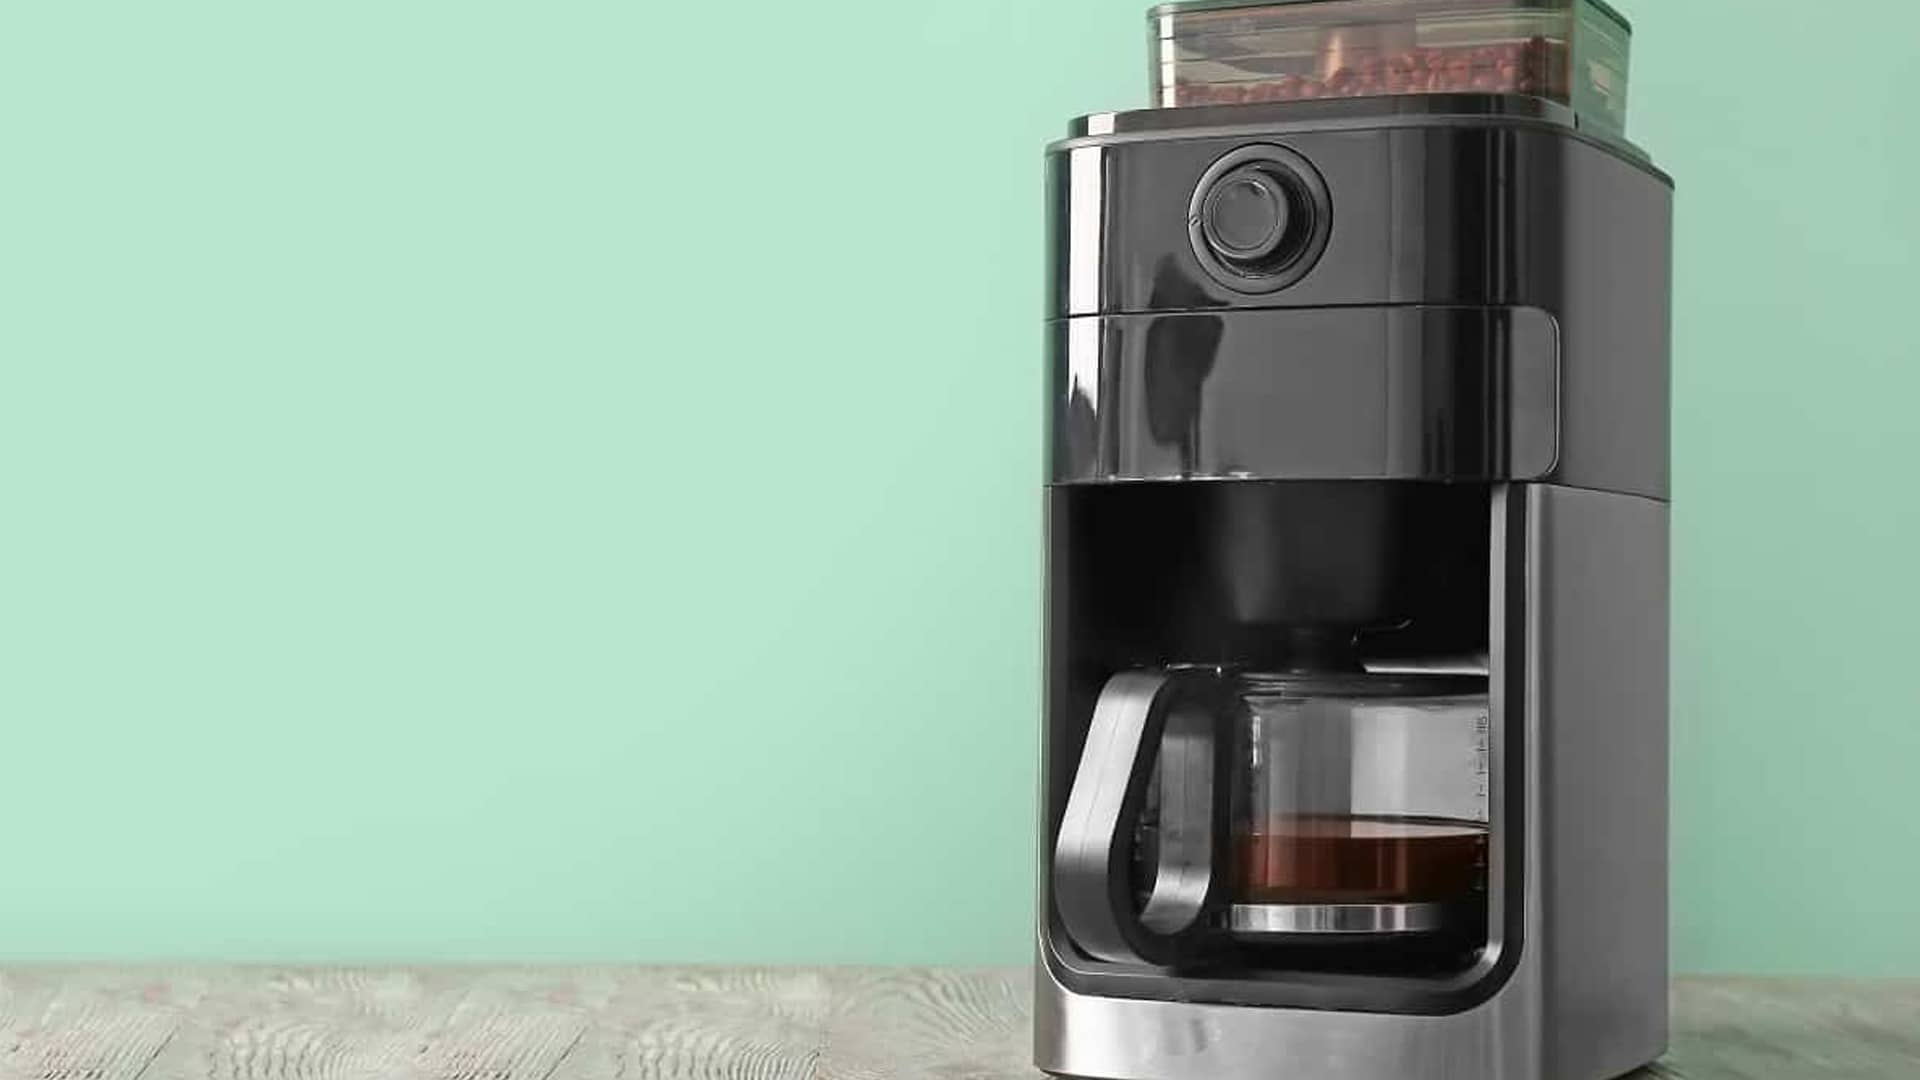 Mr Coffee 12 Cup Programmable Coffee Maker Review